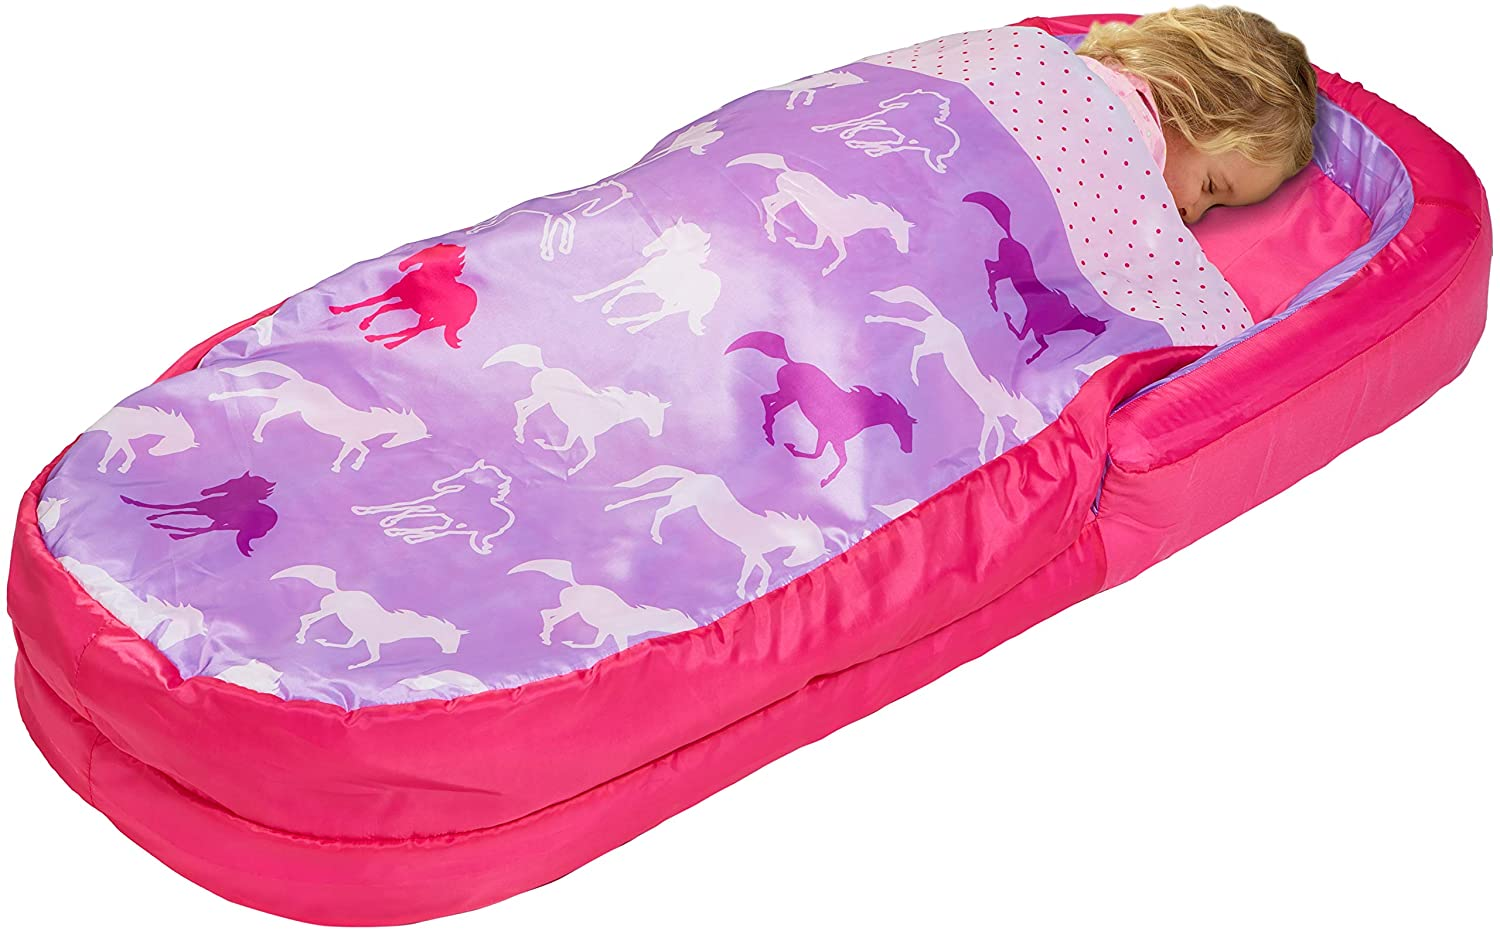 Girl asleep in MyFirst ReadyBed with purple horses design